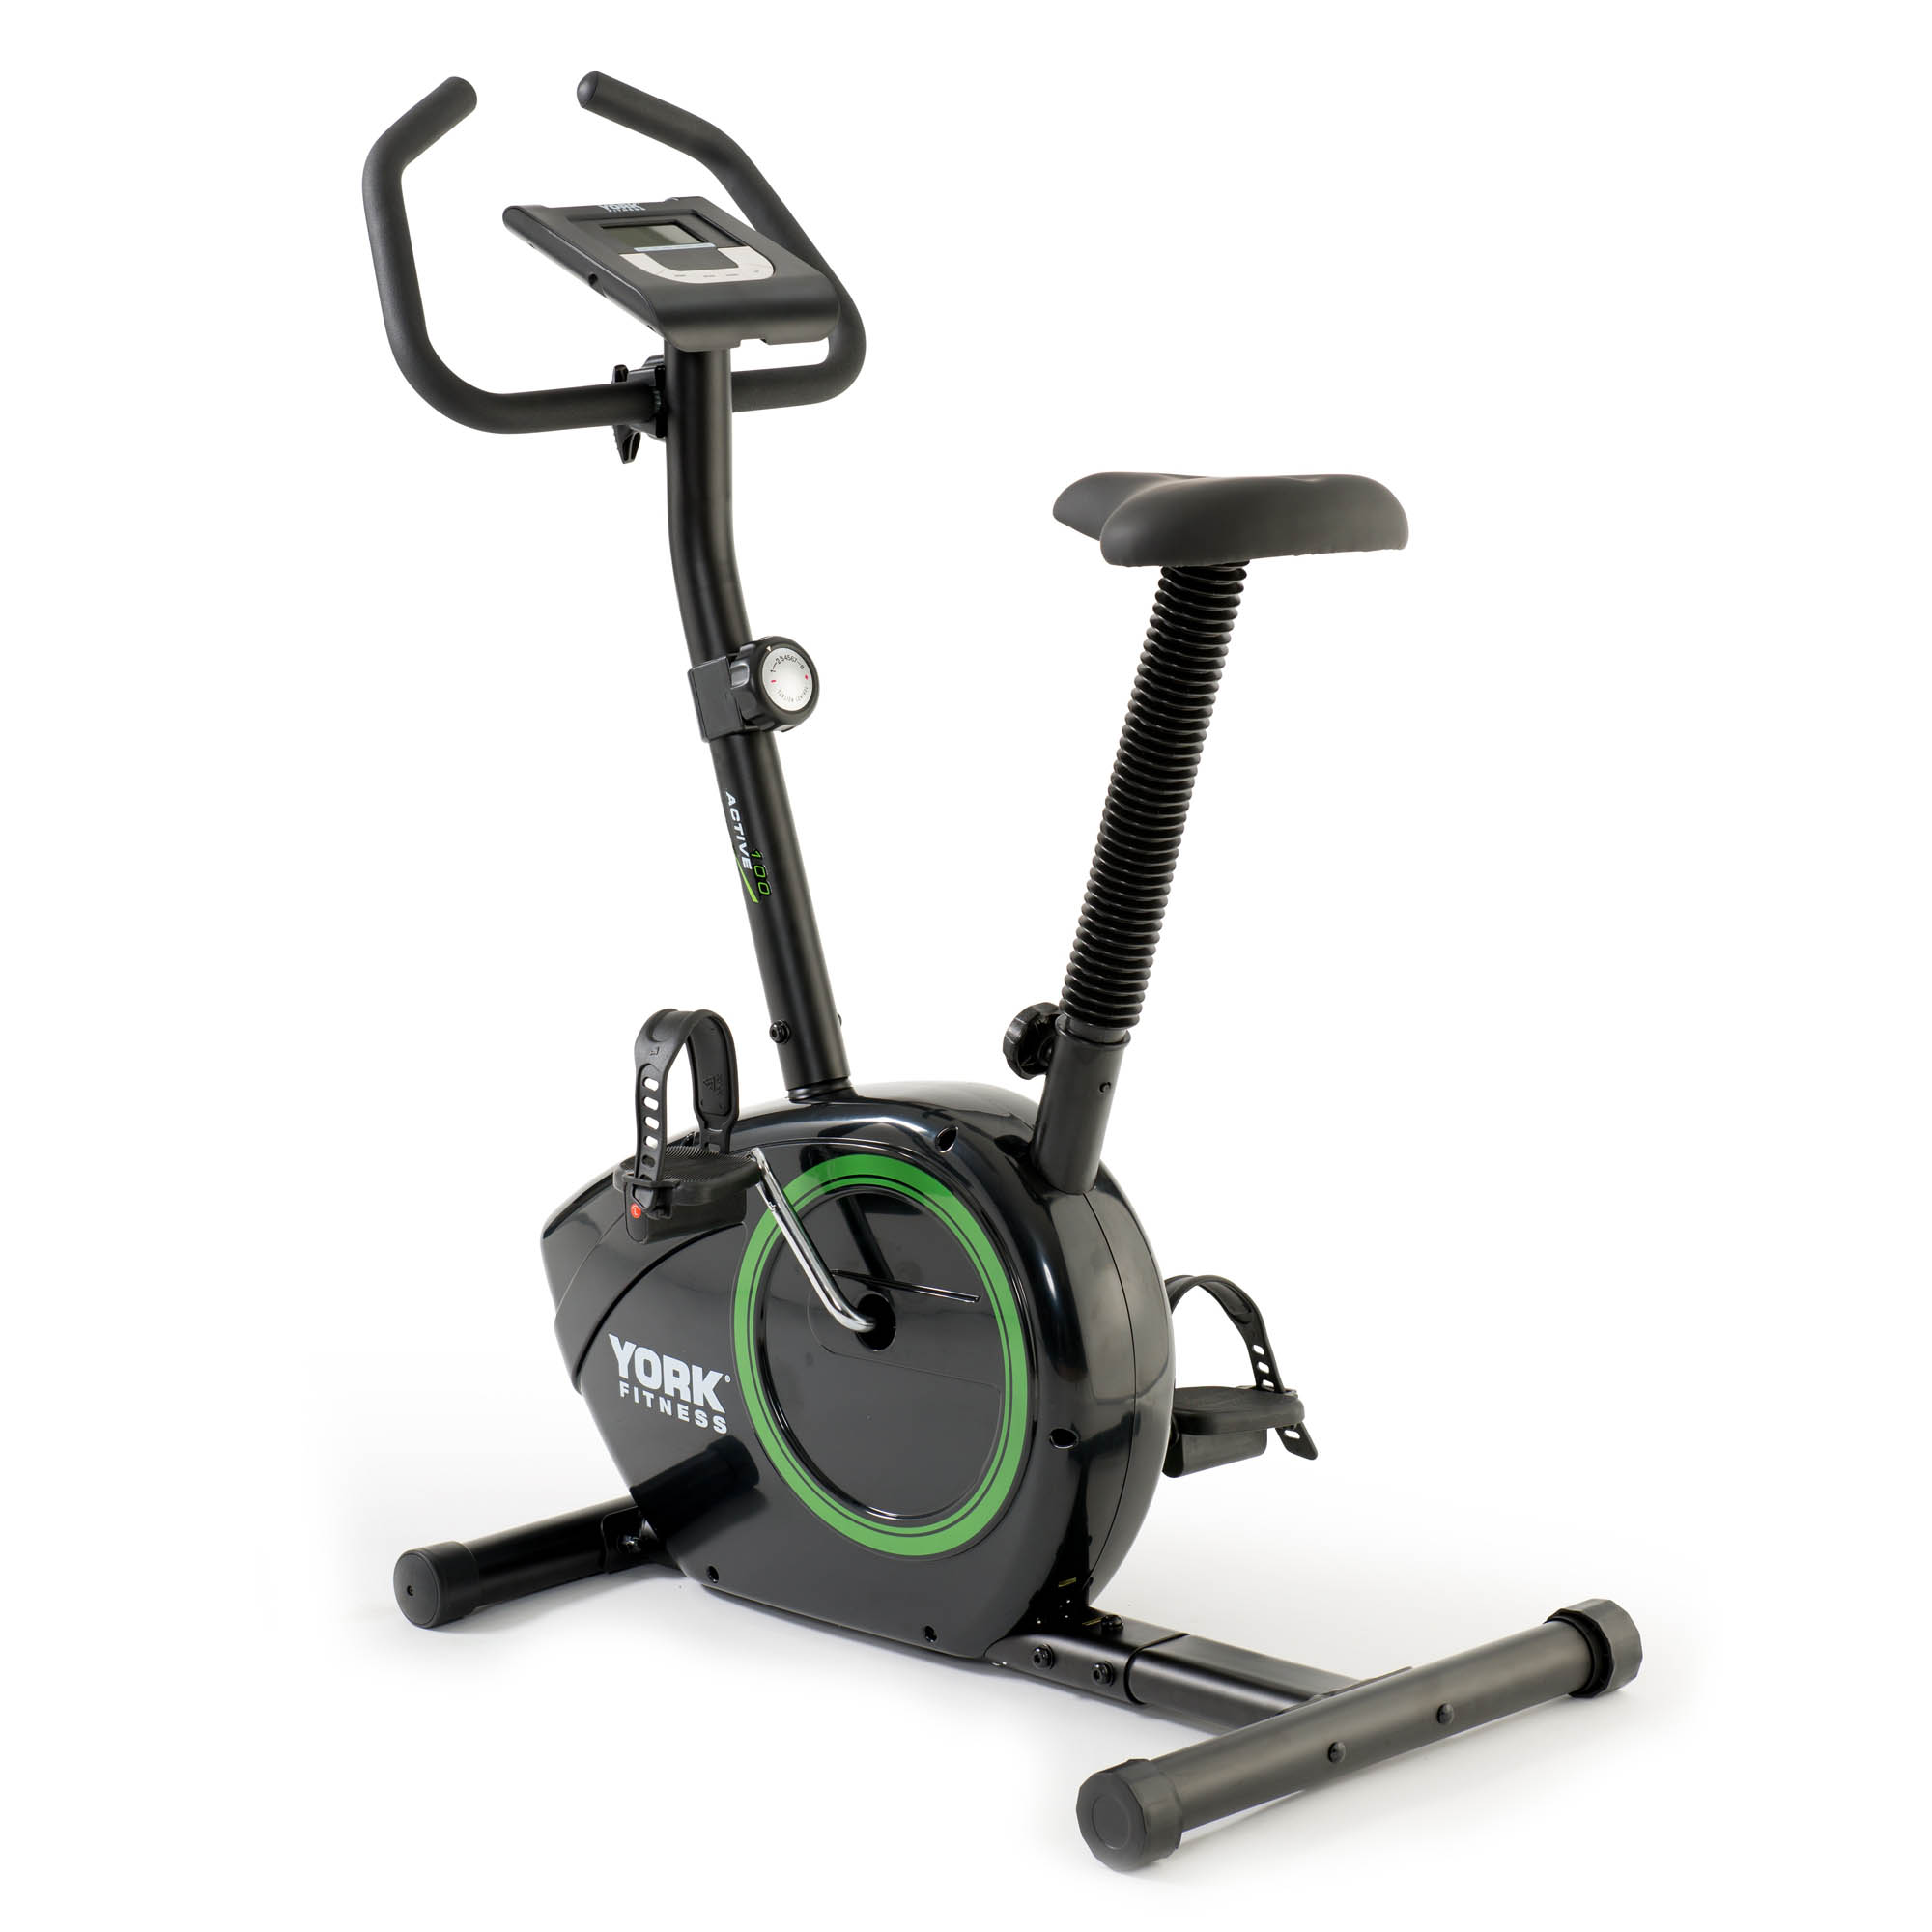 York Active 100 Exercise Bike